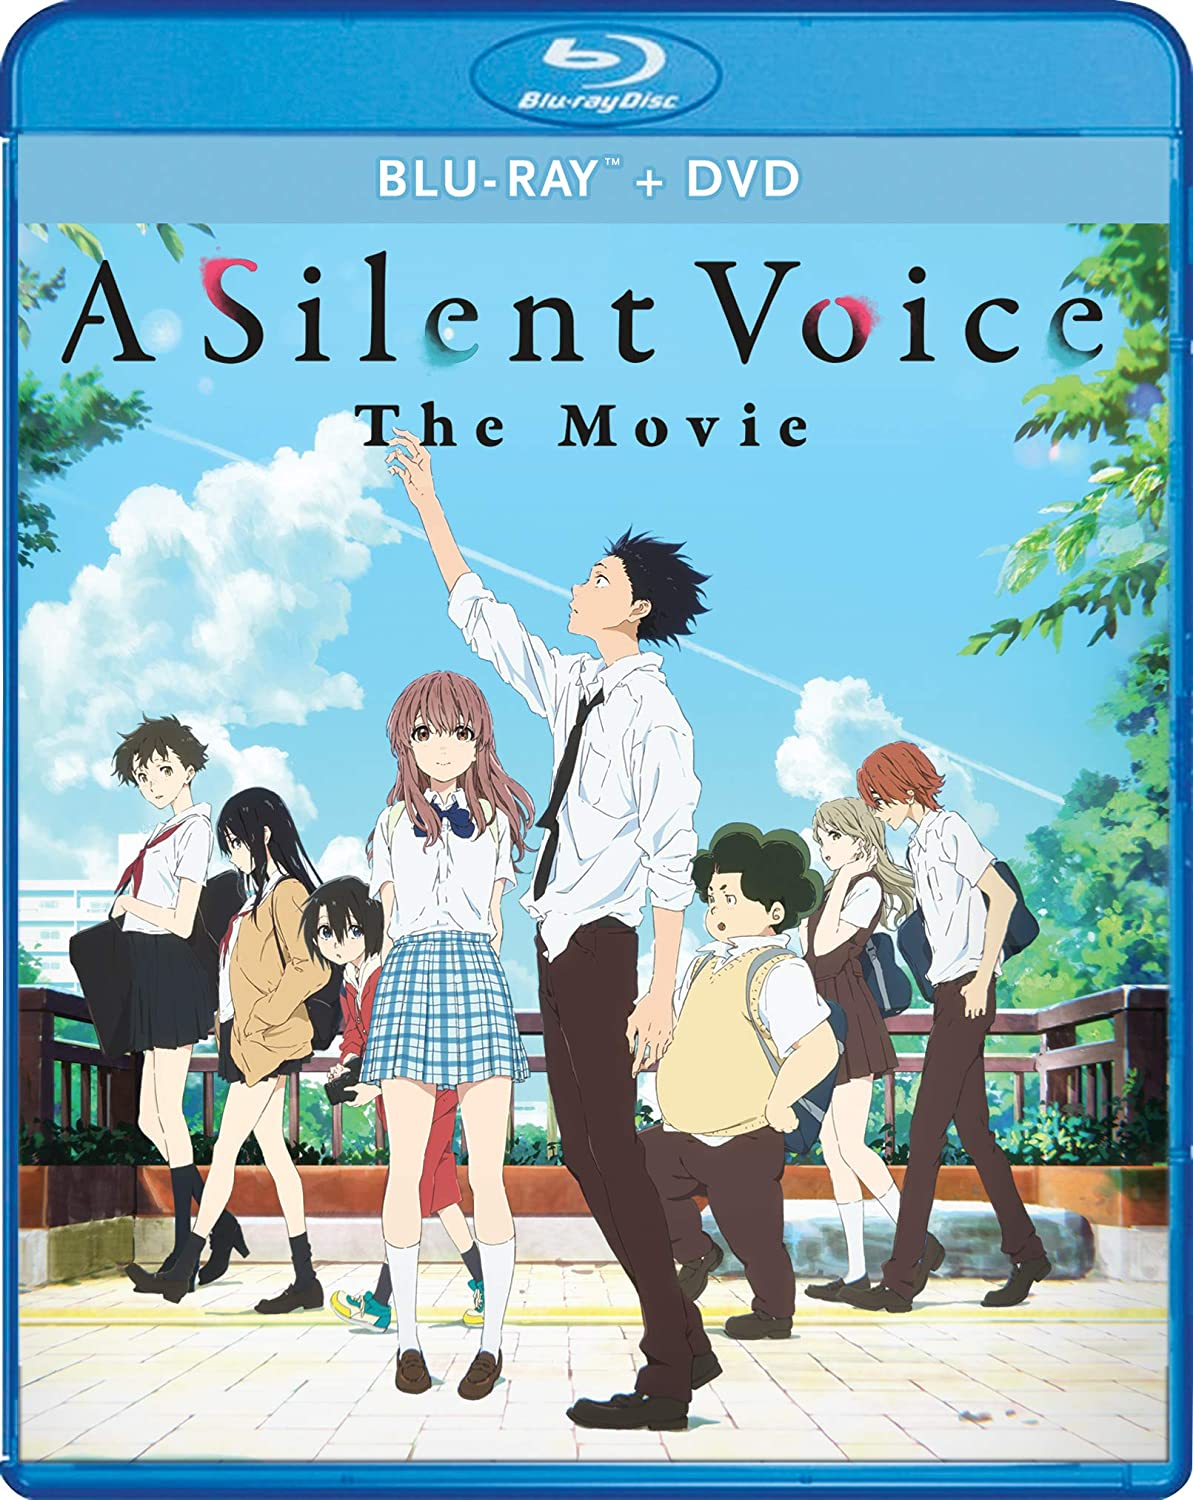 A Silent Voice Blu-ray/DVD (Dual Audio)